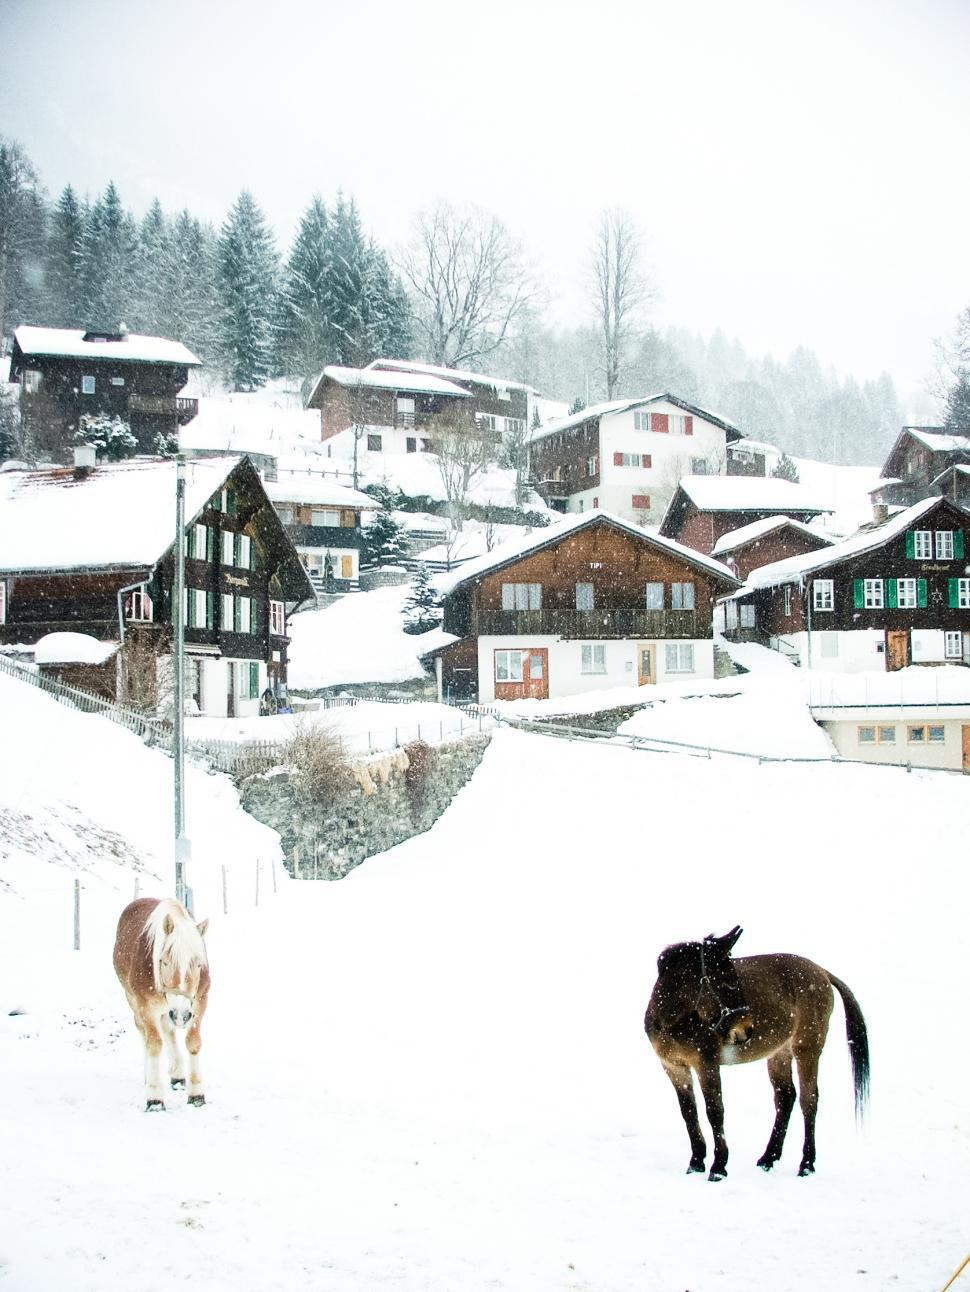 Download Free Stock HD Photo of Snowy village and horses Online